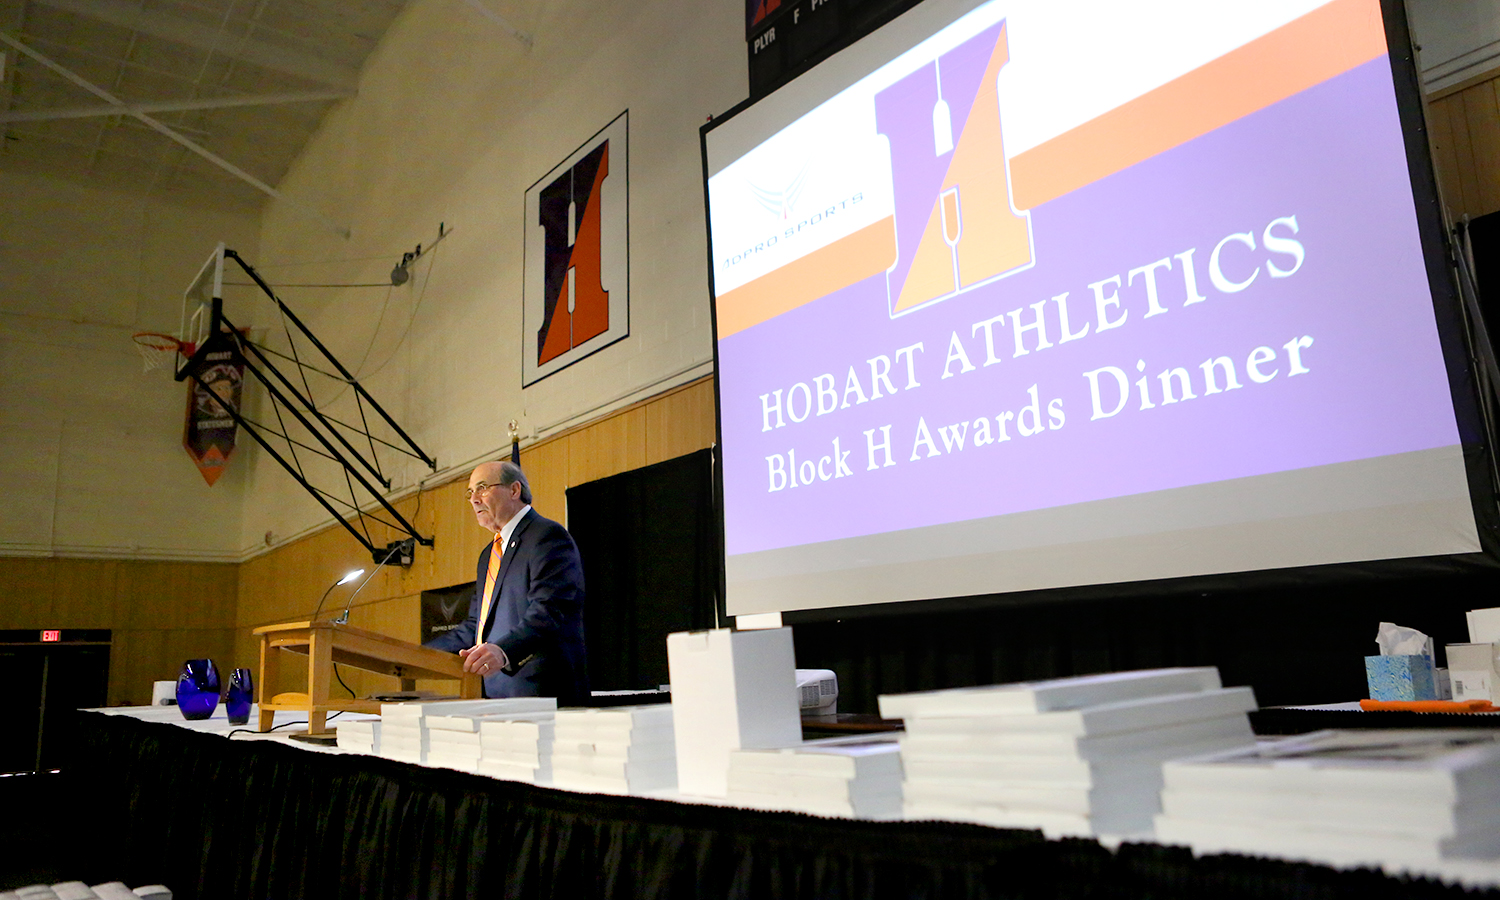 Hobart Block H Awards Dinner 2017